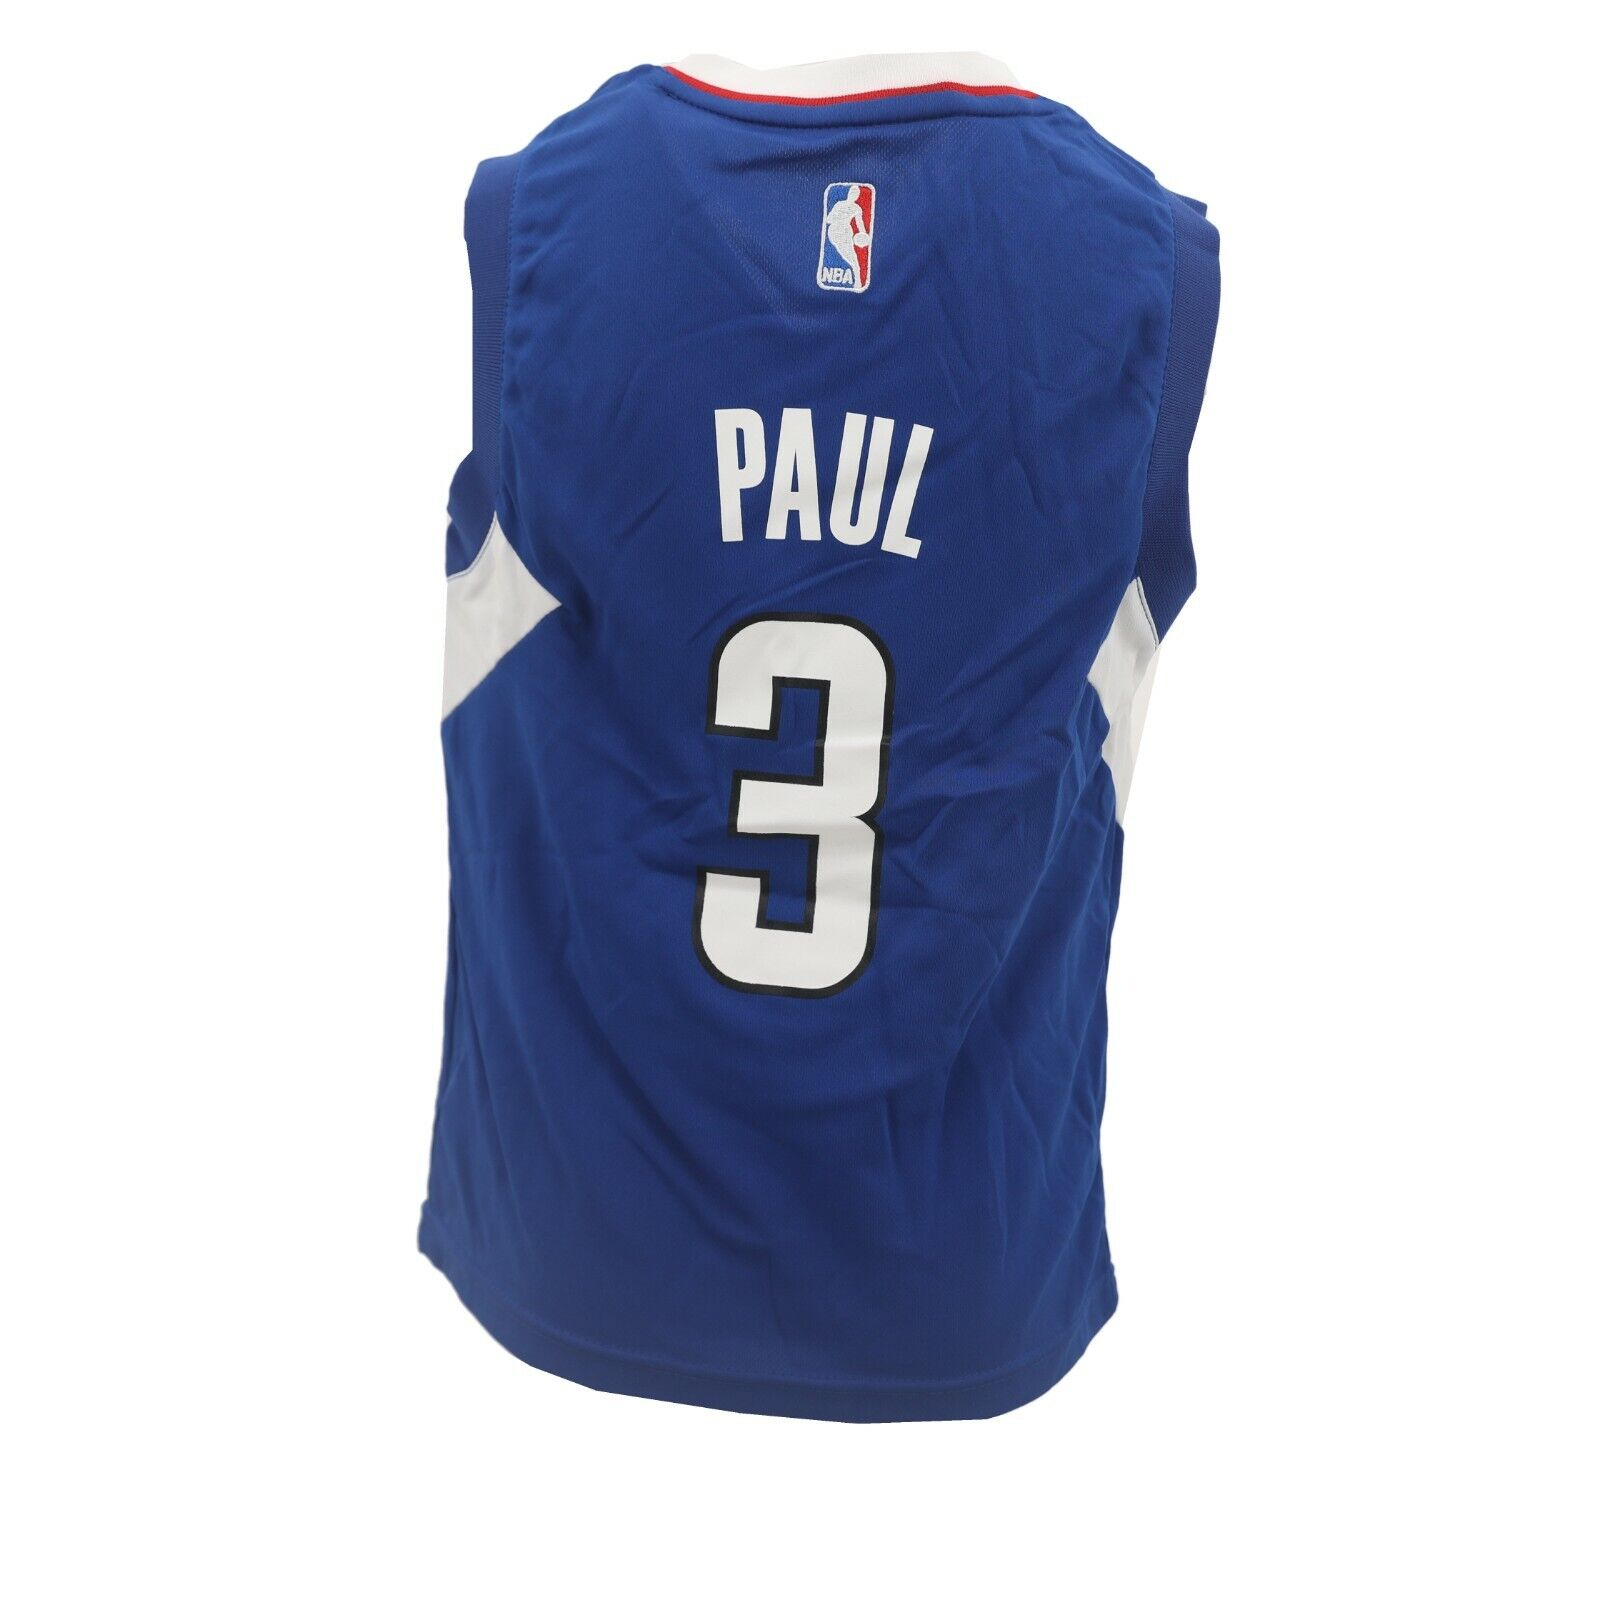 best service 8b625 cb981 Details about Los Angeles Clippers Official NBA Adidas Kids Youth Size  Chris Paul Jersey New